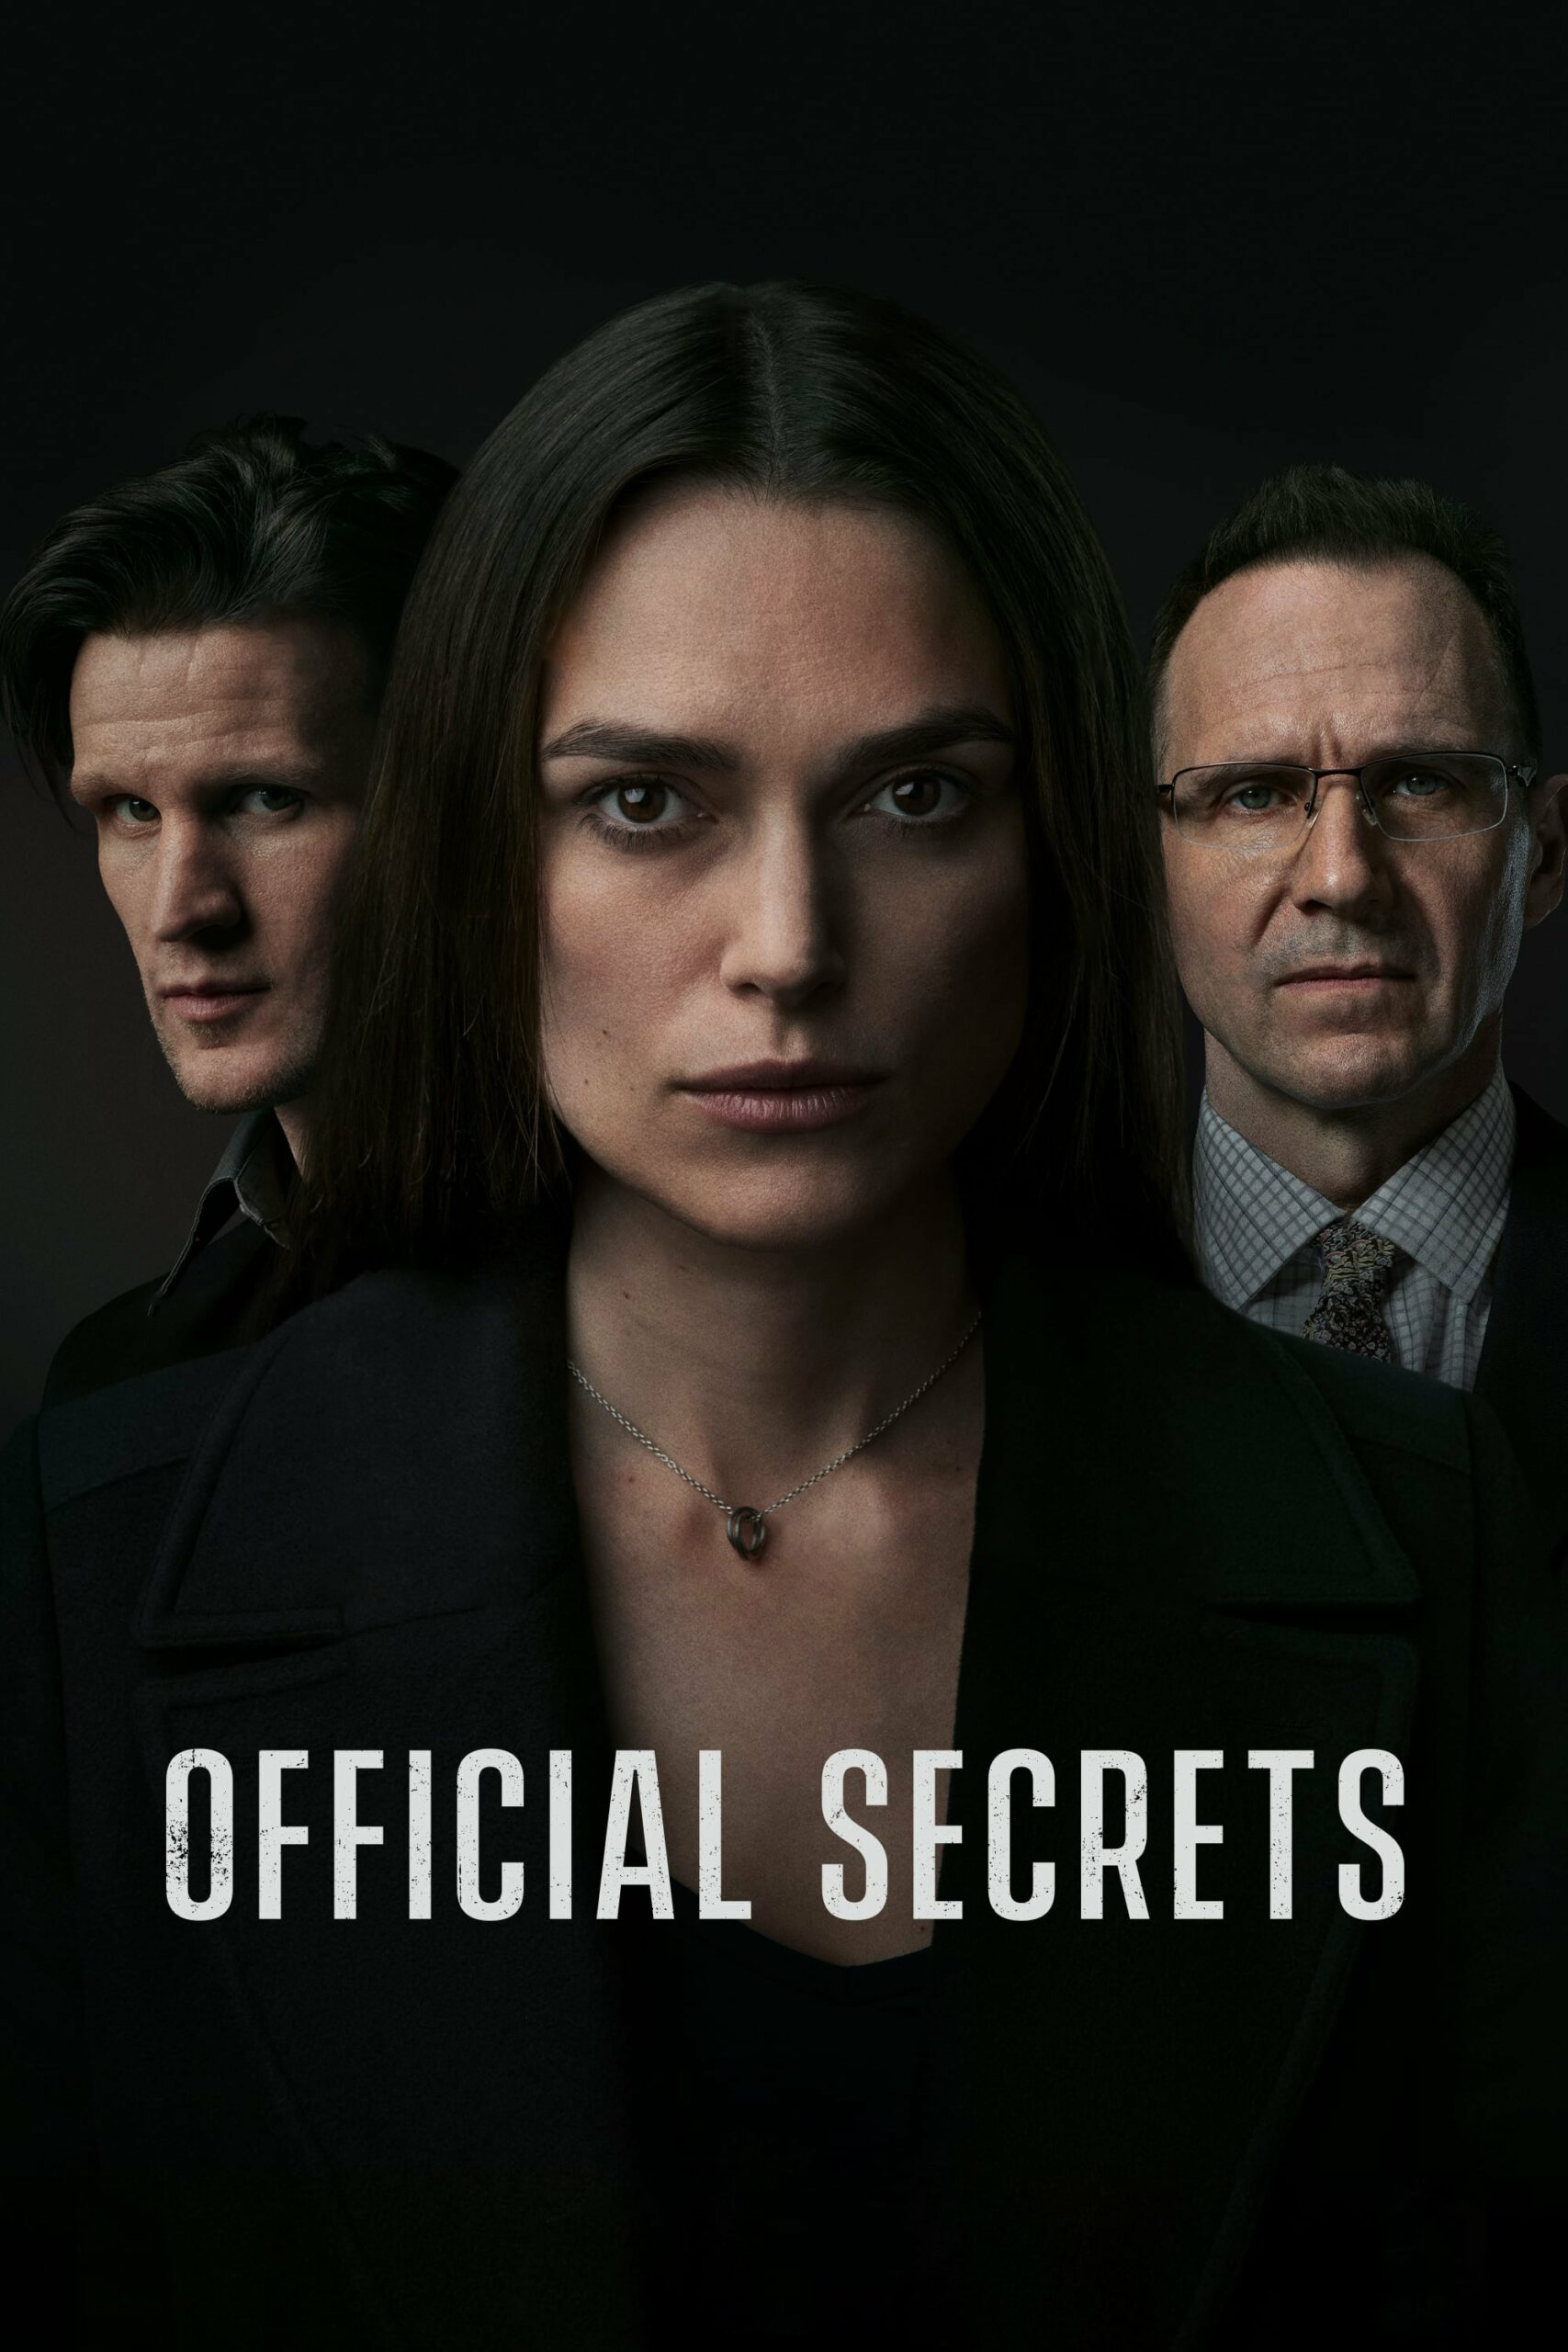 Official Secrets Movie Review